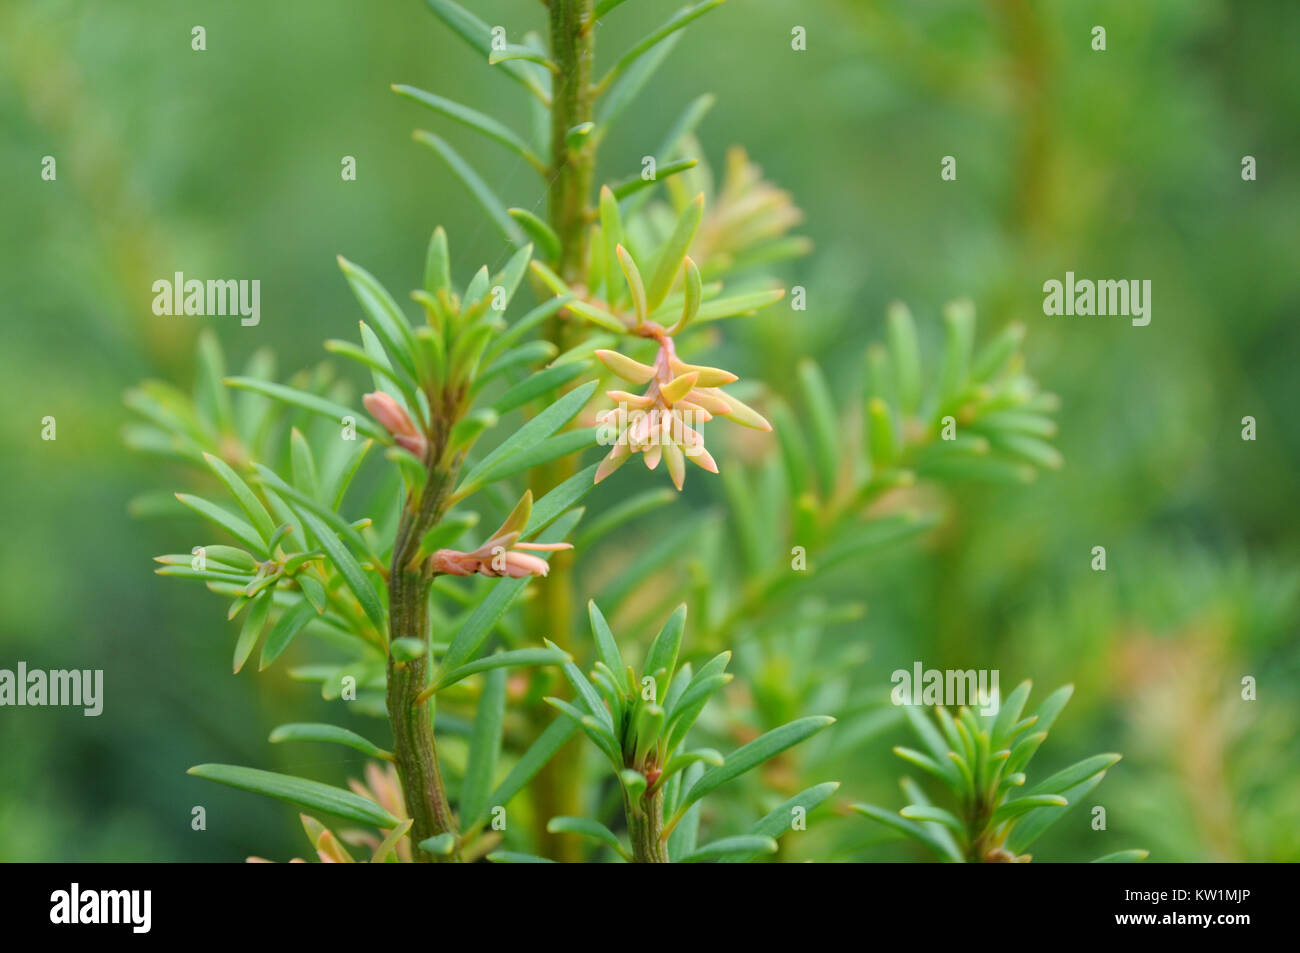 detail of a yew hedge - Stock Image